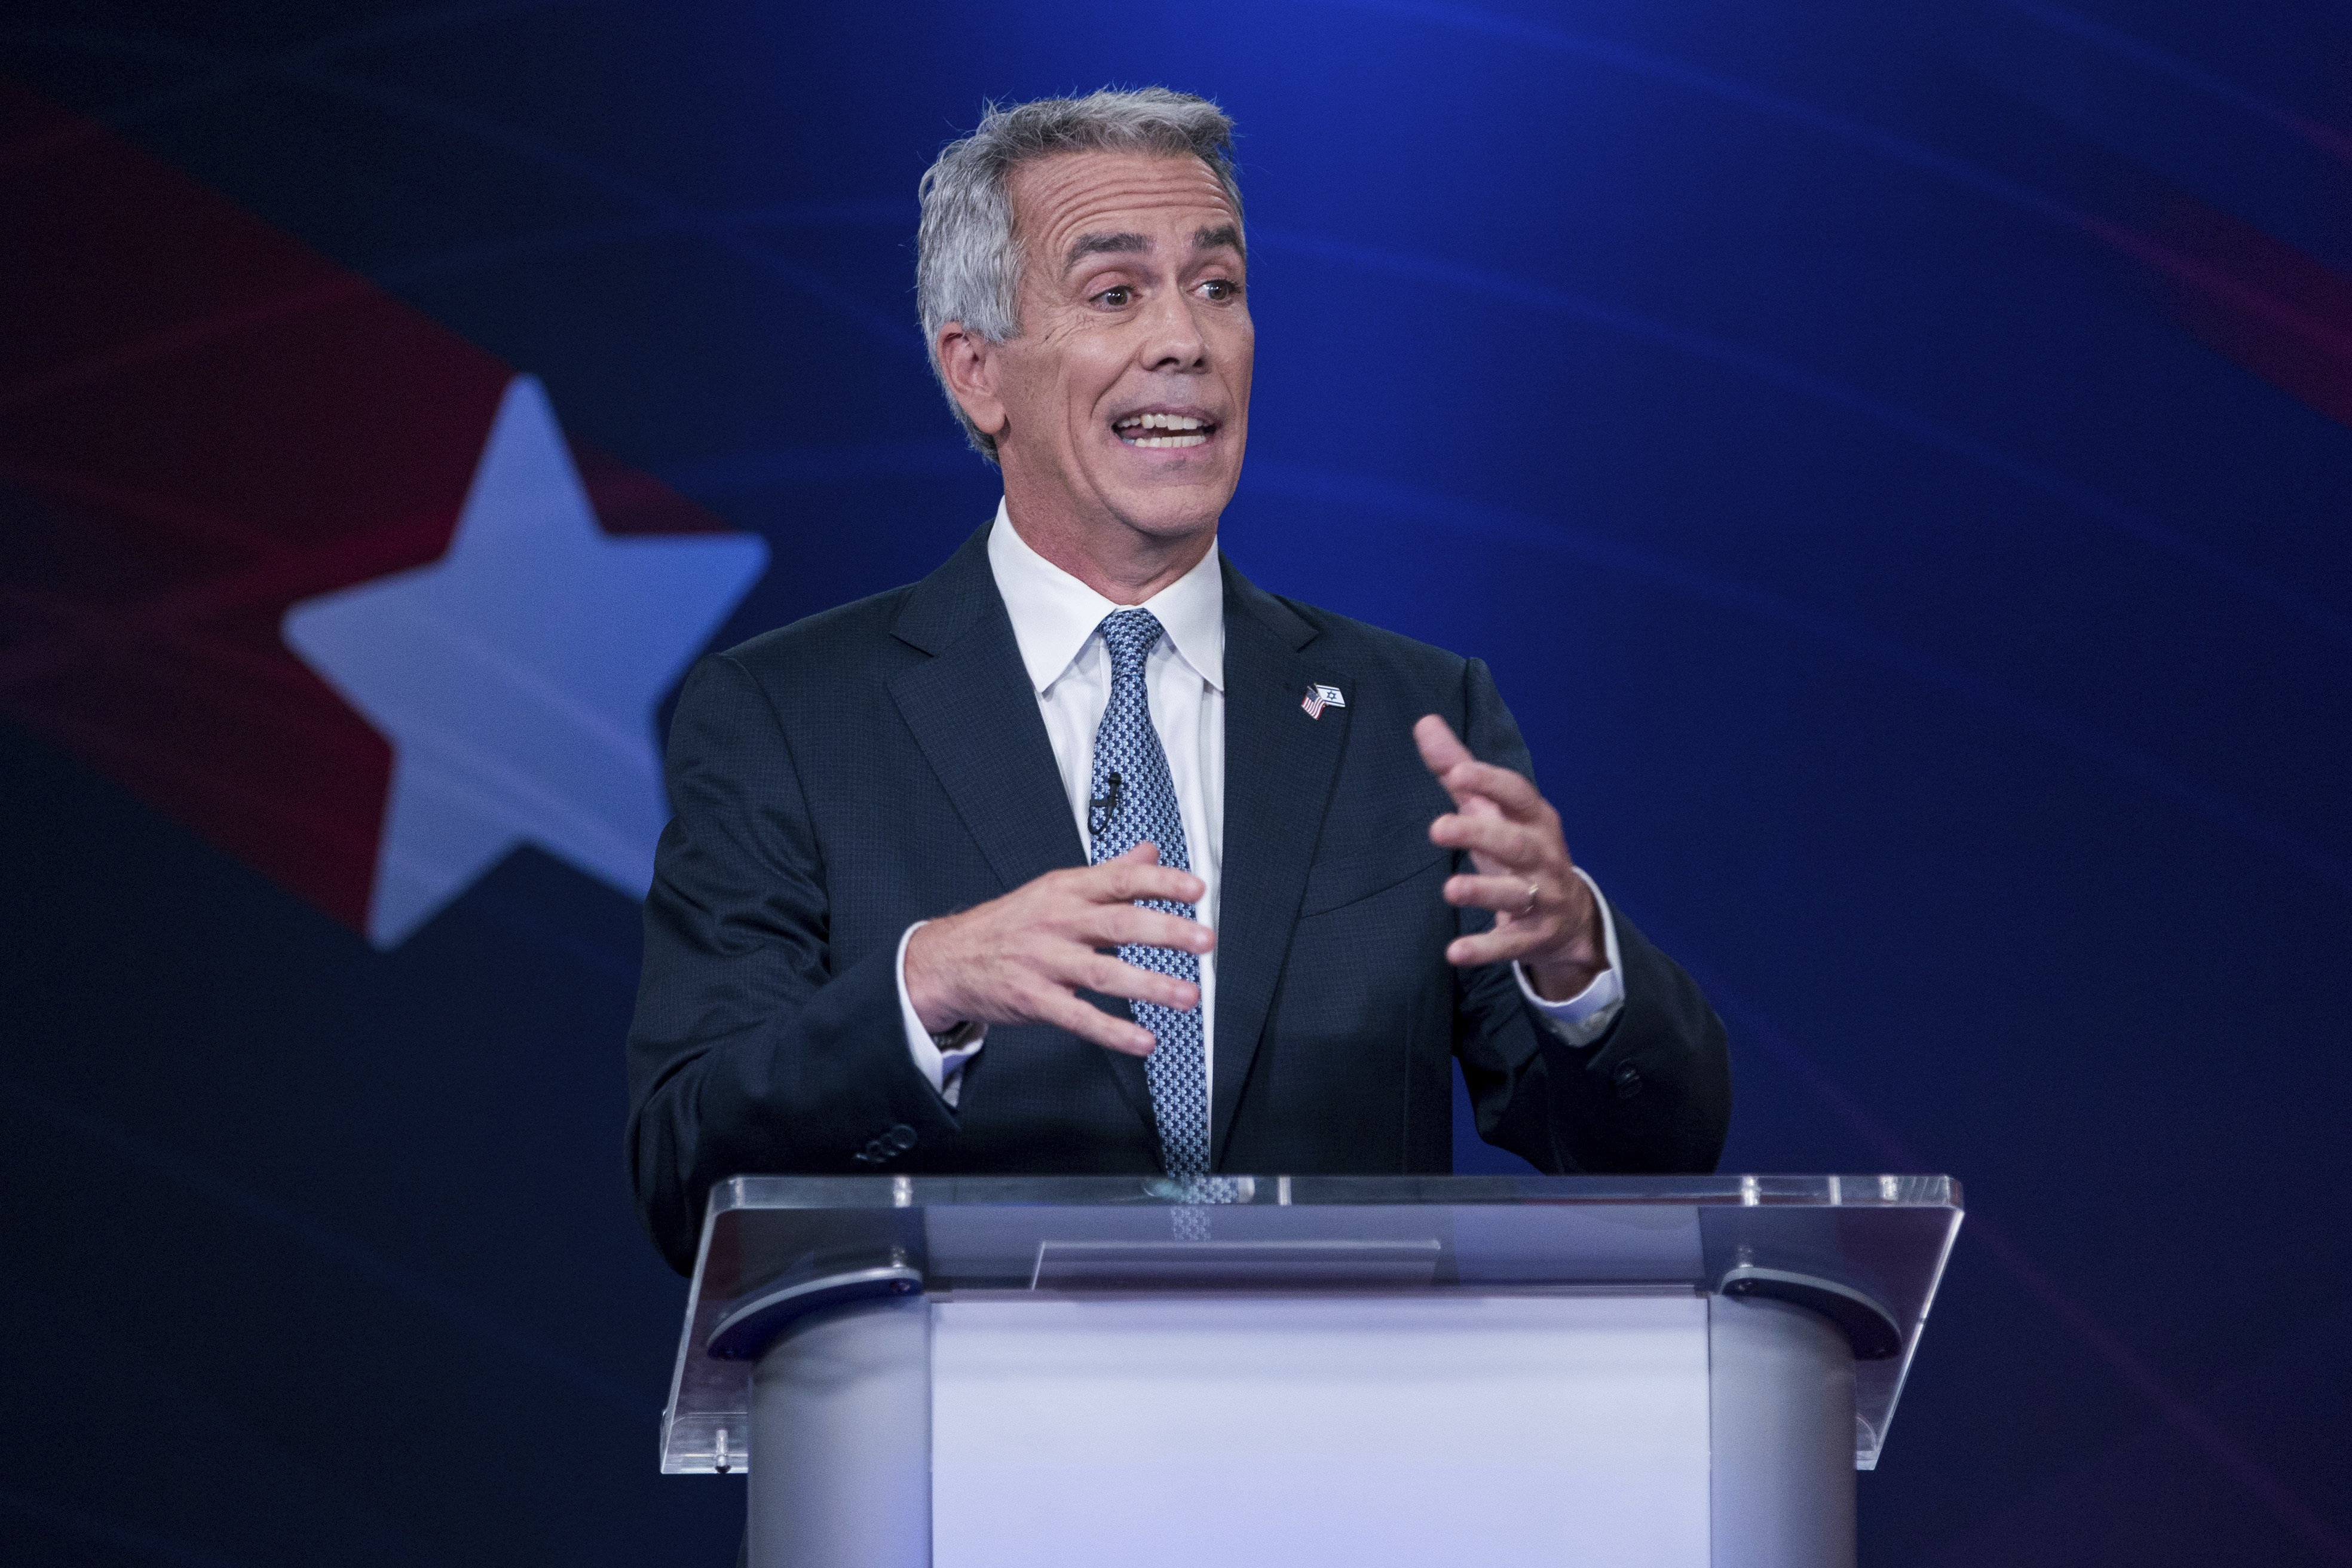 Joe Walsh, Trump primary challenger: President giving the 'middle finger' to the country